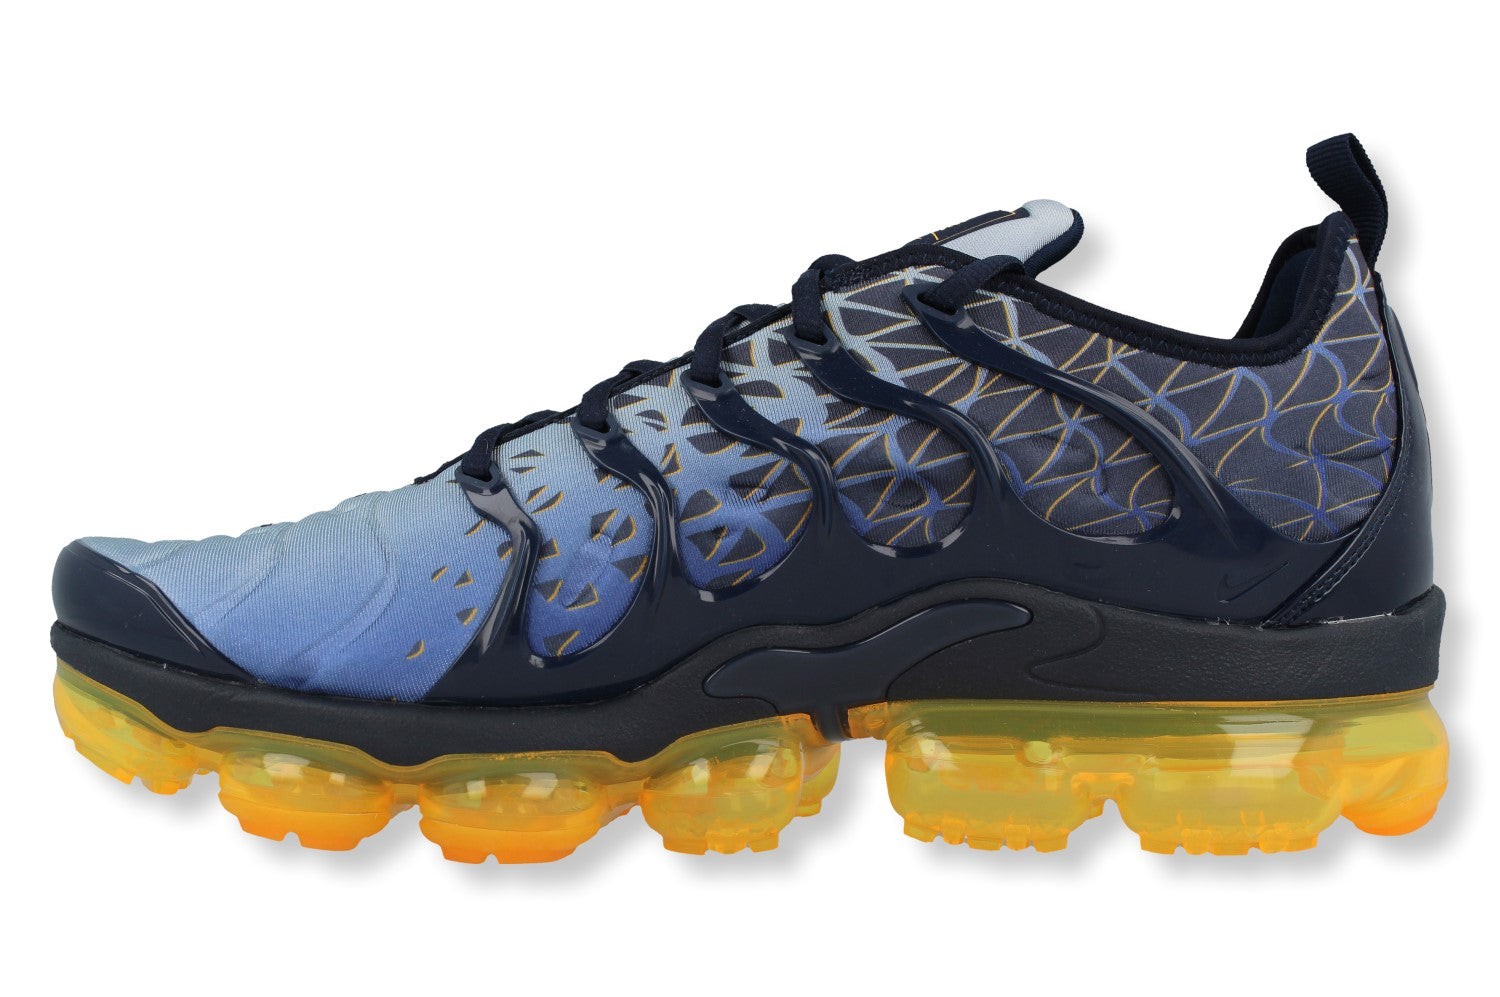 new style a0a3f 471f6 Air Vapormax Plus